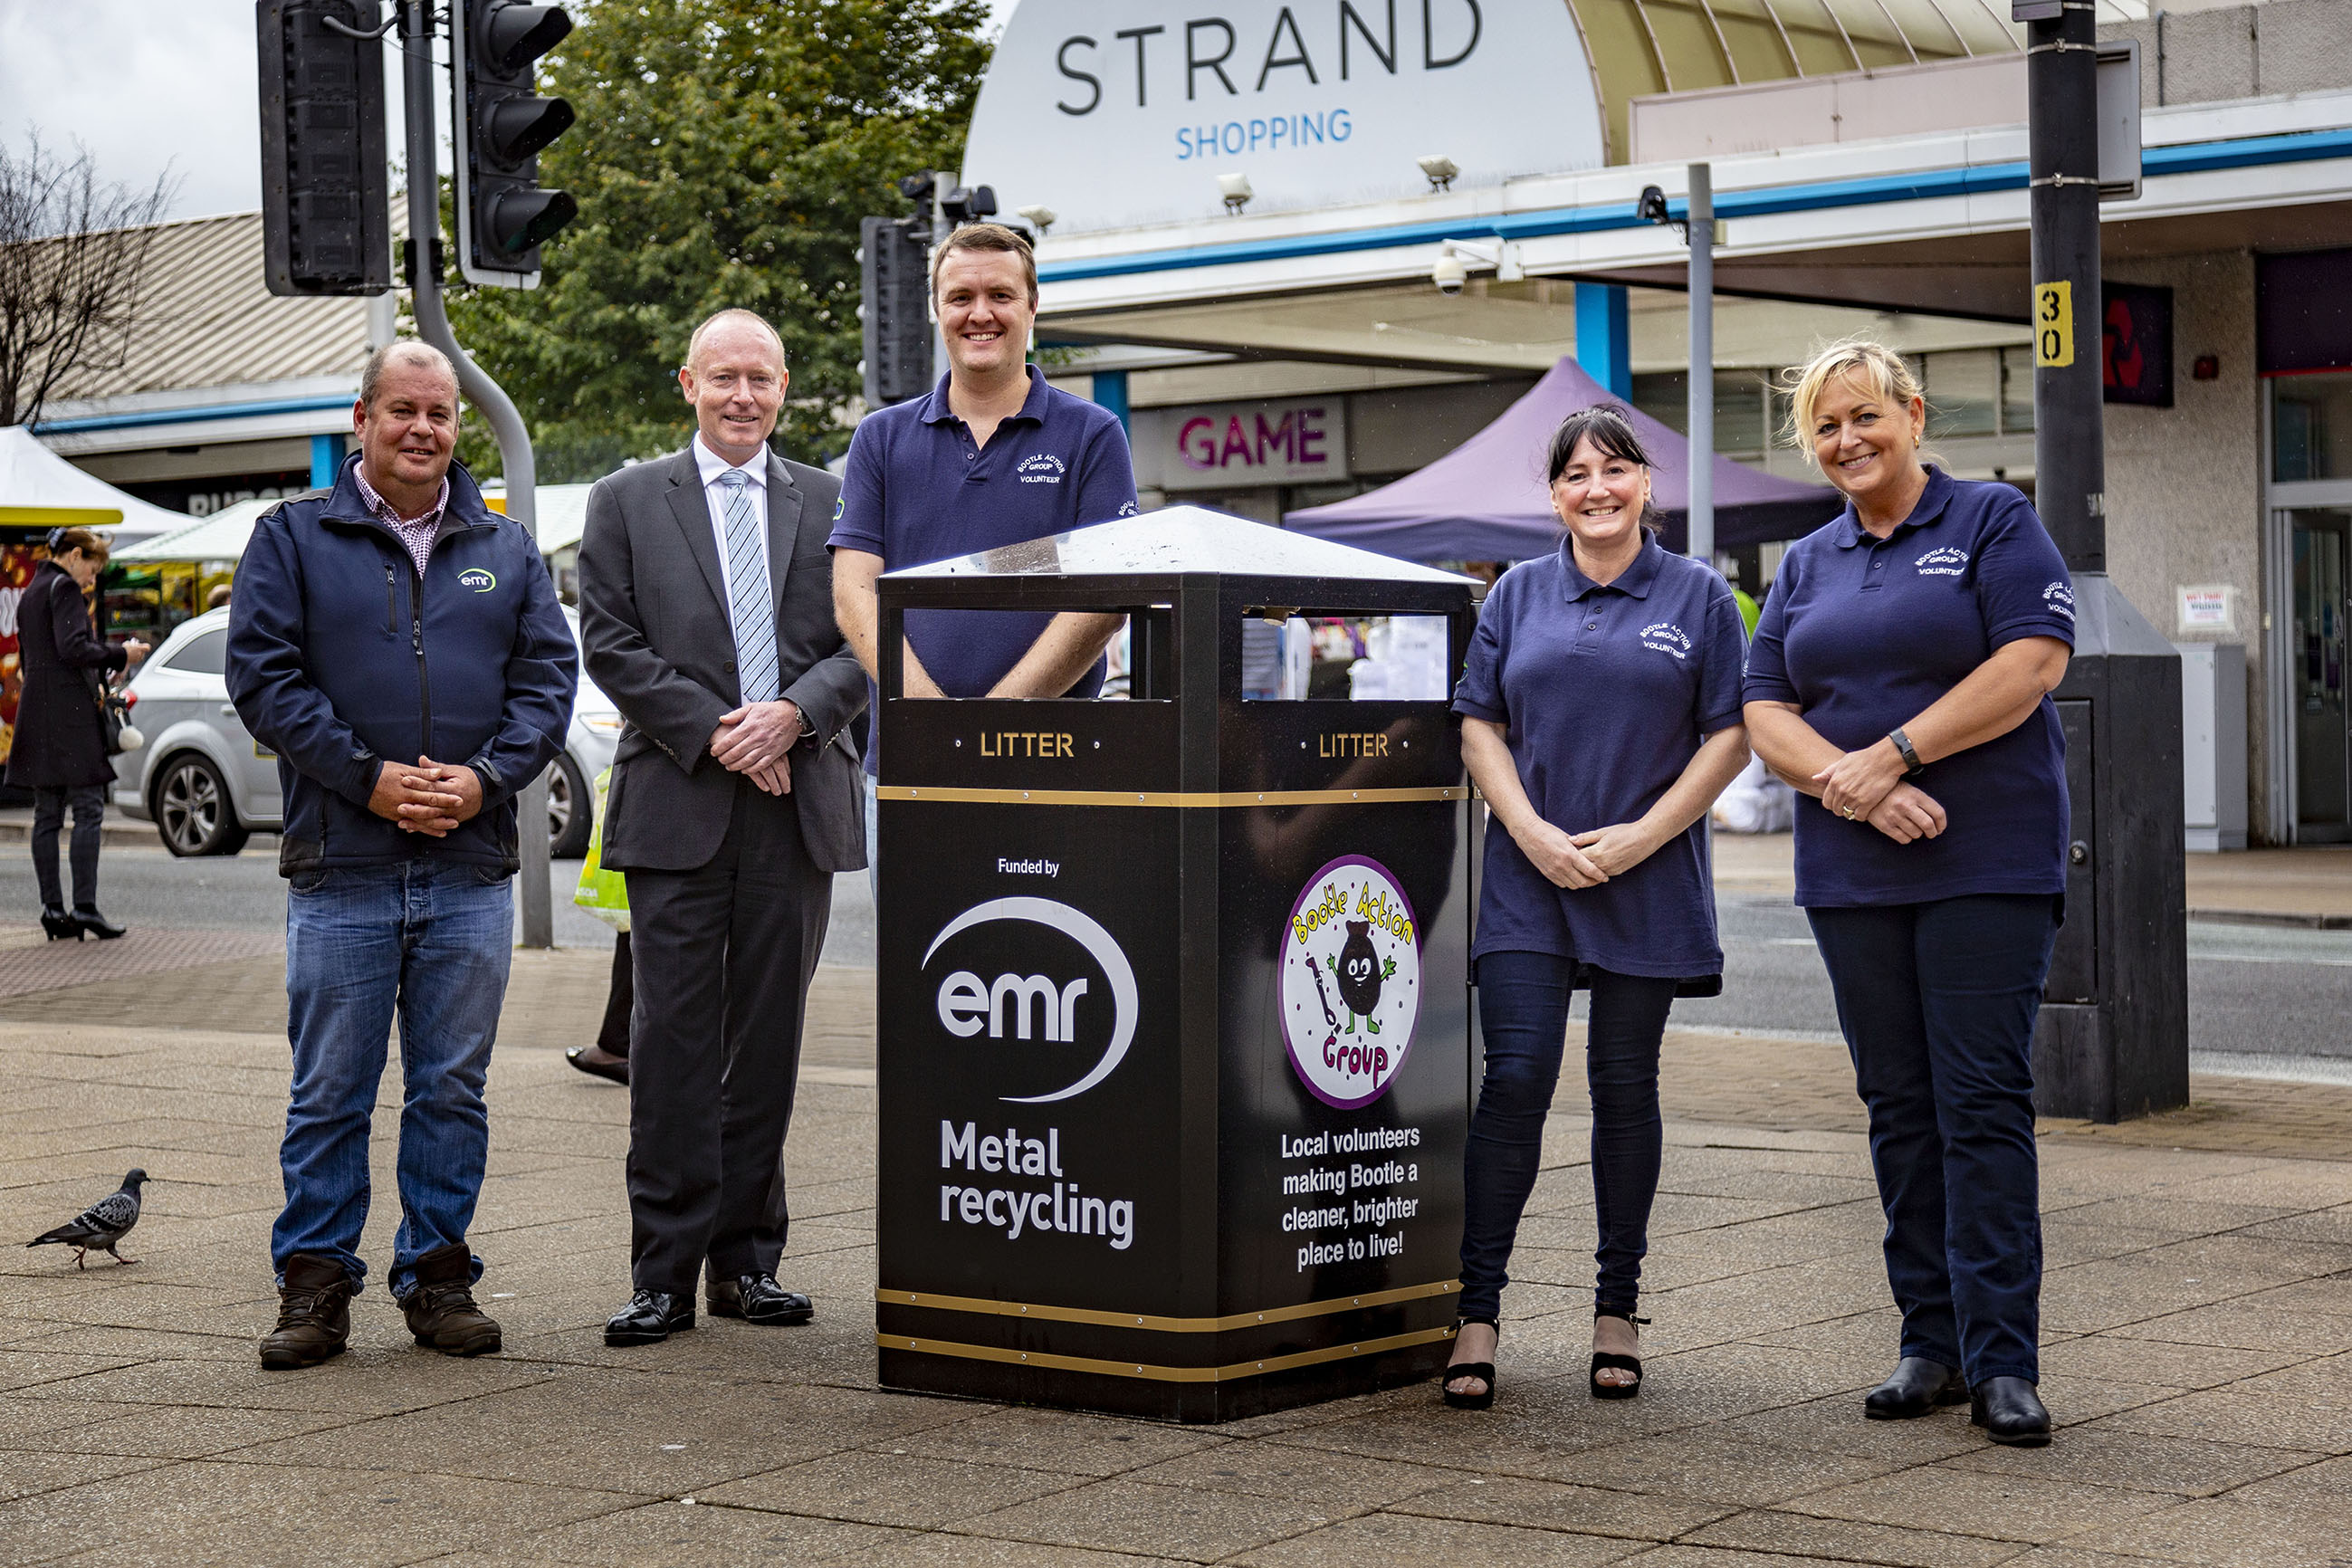 Outdated bins are replaced at Strand